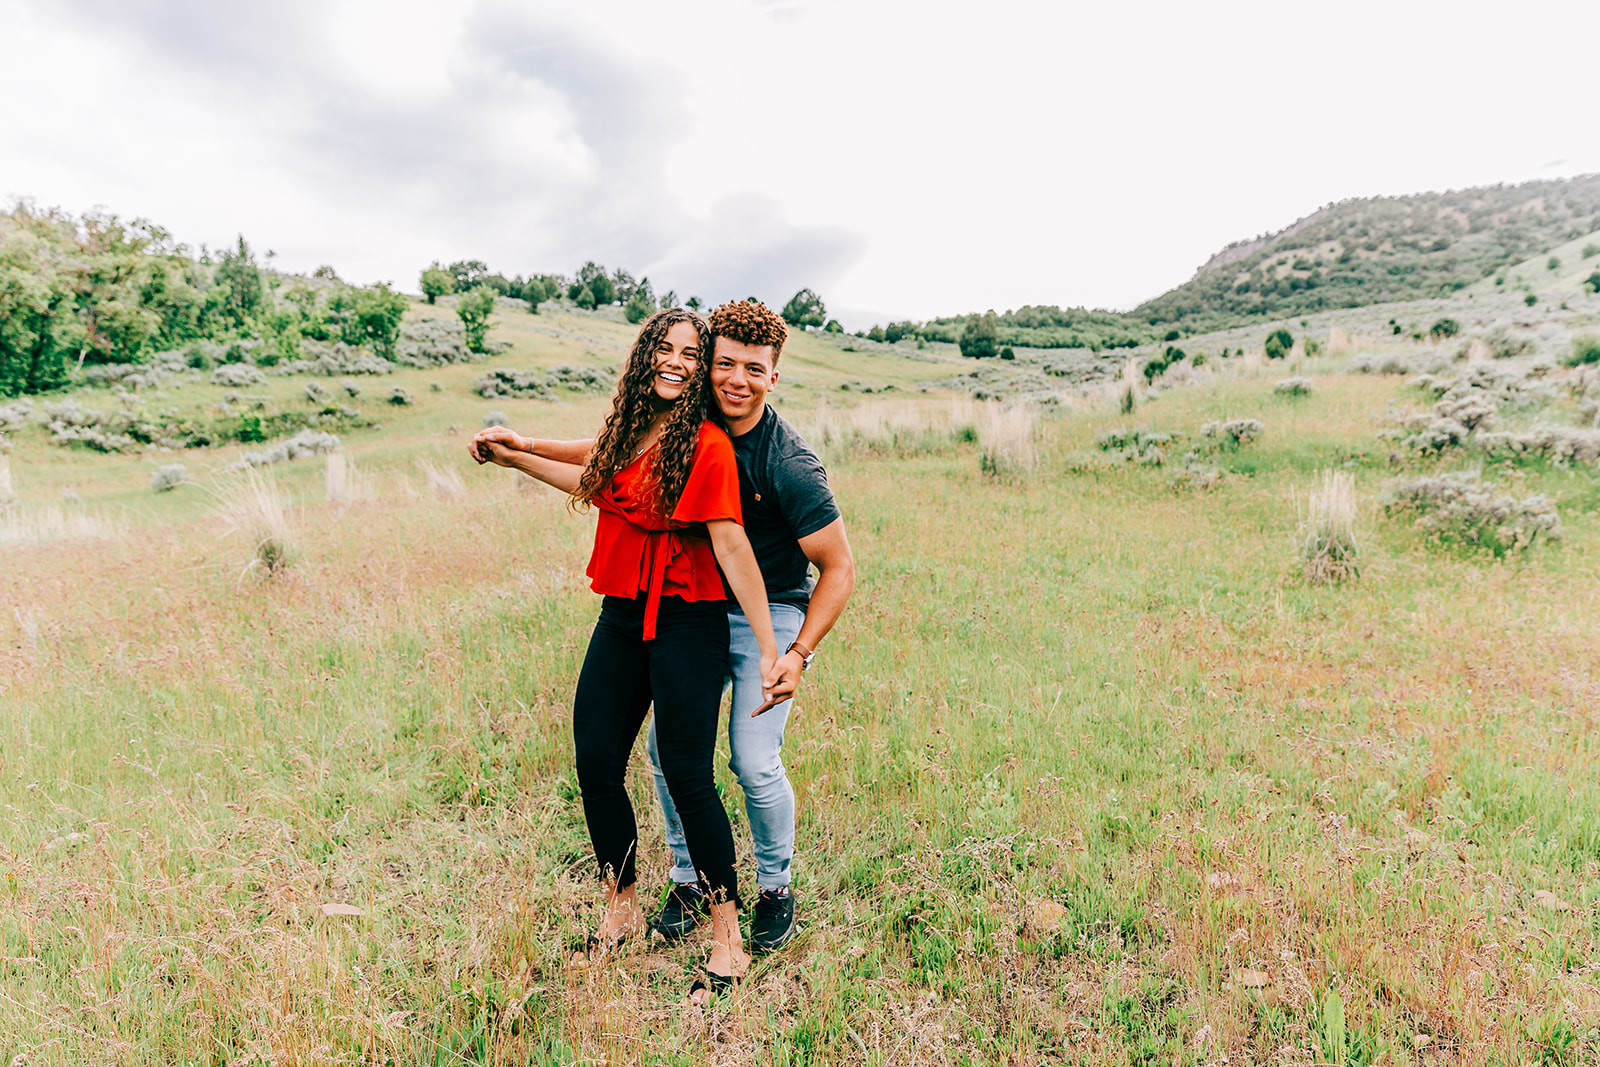 Couples session dancing in a field of wildflowers on top of a mountain in Paradise, Utah northern utah engagement photographer Bella Alder Photography professional couples session #bellaalderphoto #engagements #mountainengagements #utahengagements #weddingplanning #engagementphotographer #utahengagementphotographer #couplesphotography #engagementsession #utahcouples #paradiseutah #cachevalleyutah